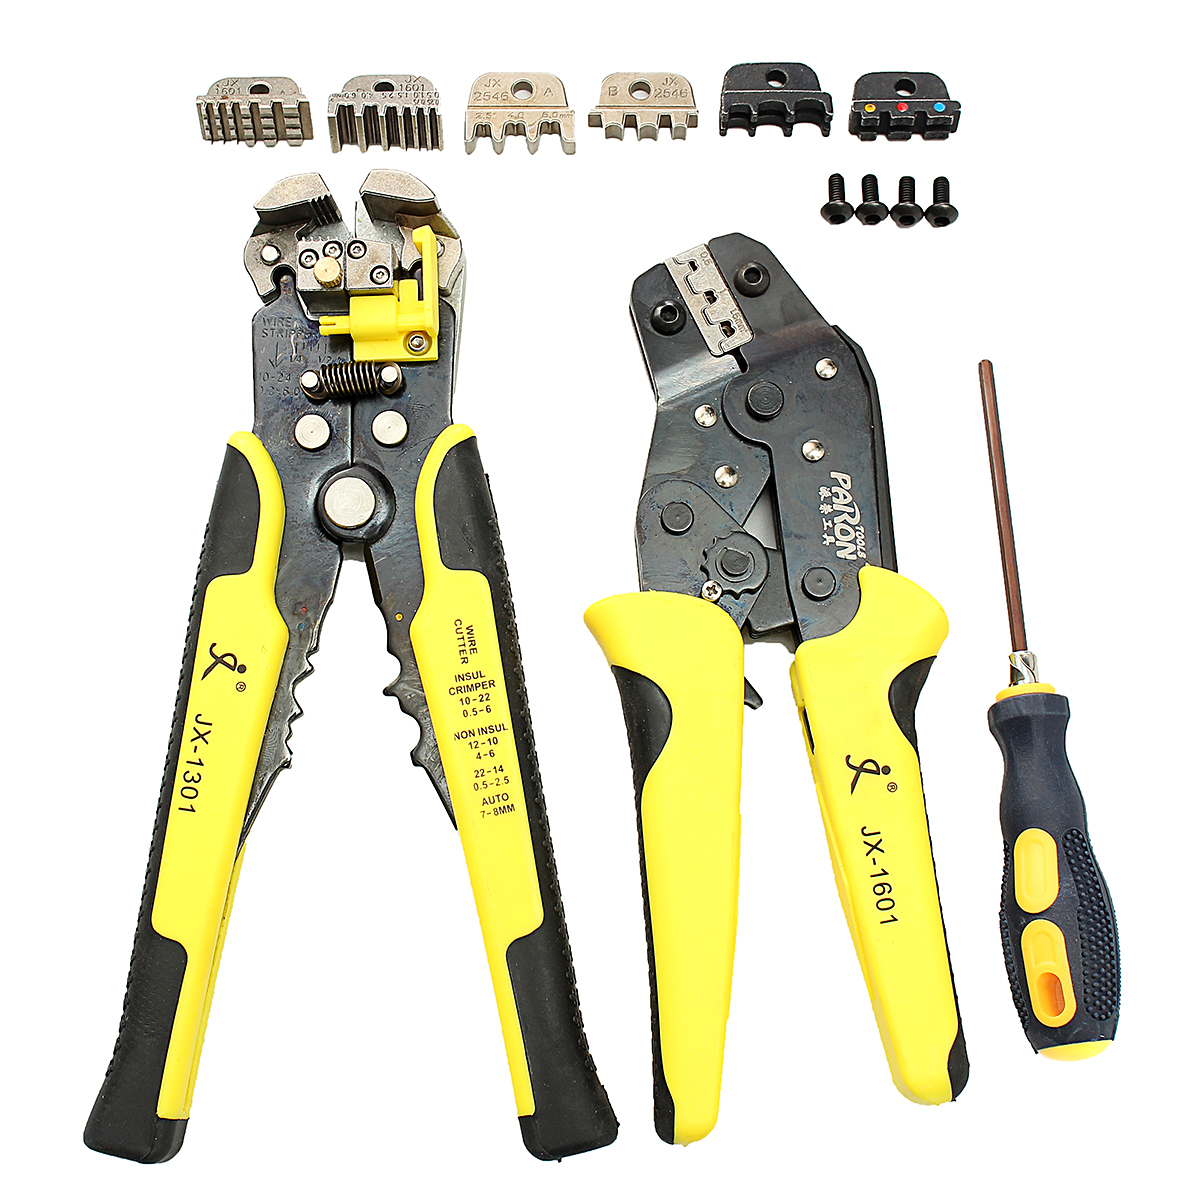 screwdrivers jx d4301 wire crimpers engineering ratcheting terminal crimping pliers tool set. Black Bedroom Furniture Sets. Home Design Ideas